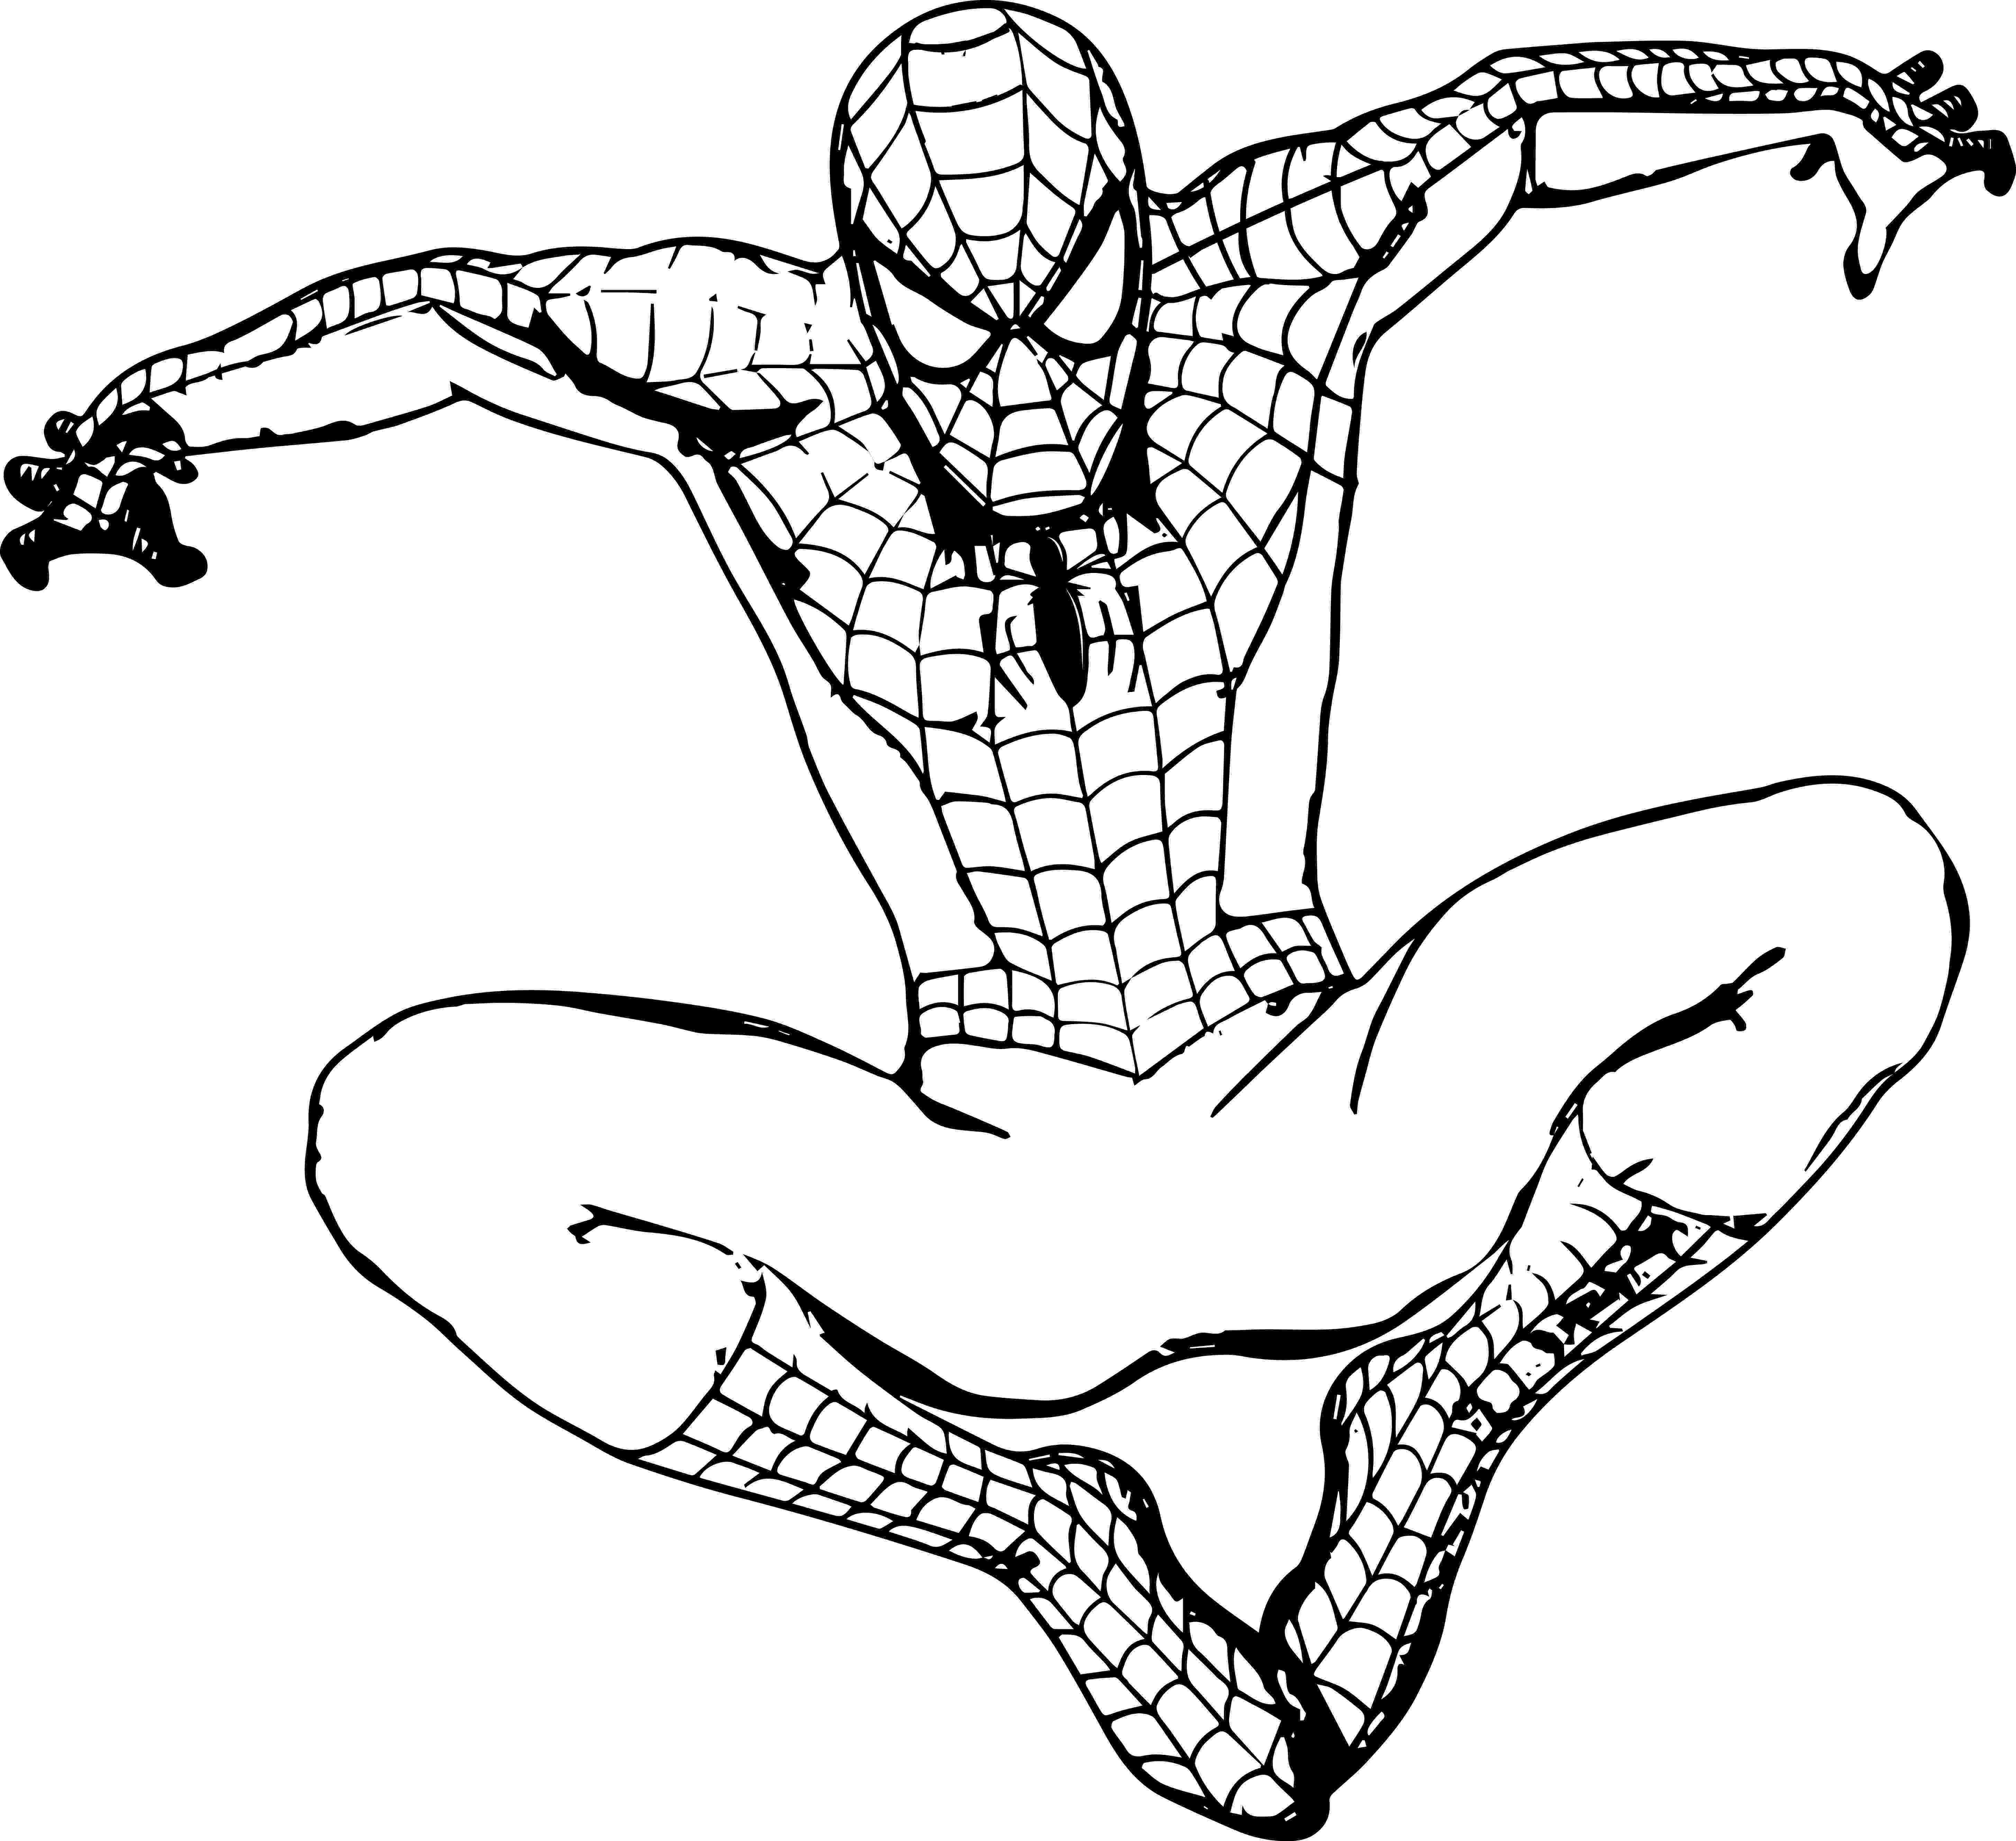 spiderman picture to color coloring pages spiderman free printable coloring pages picture color to spiderman